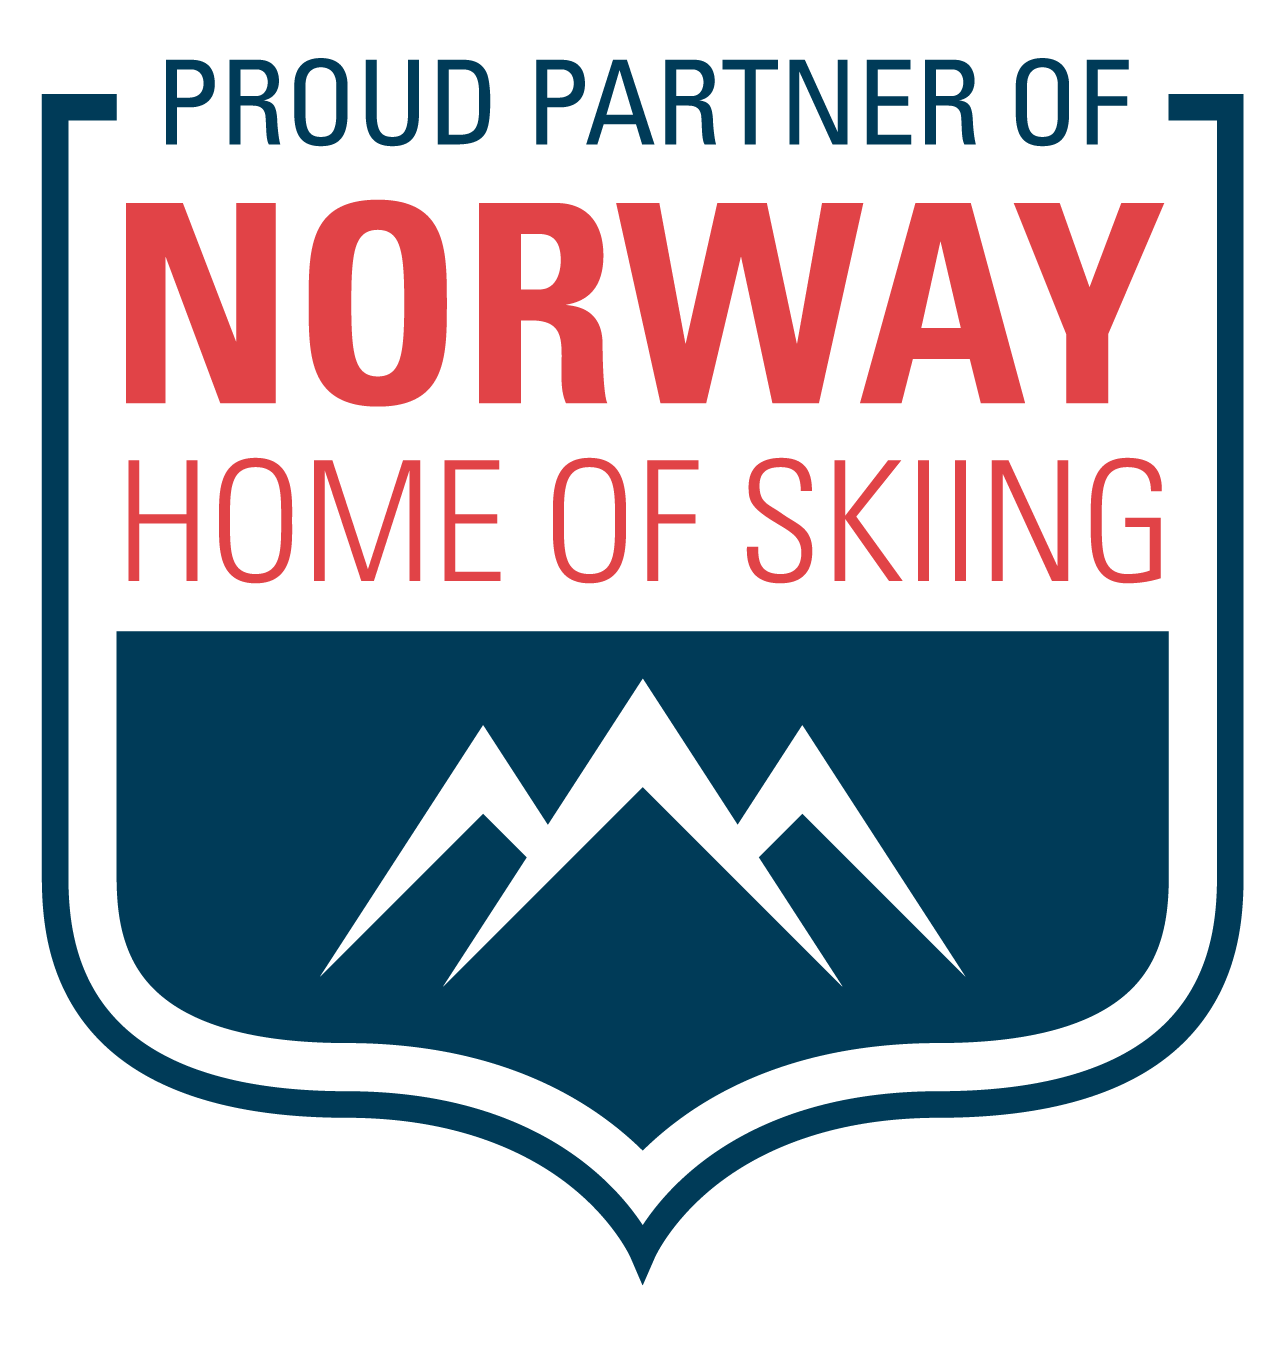 Norway home of skiing